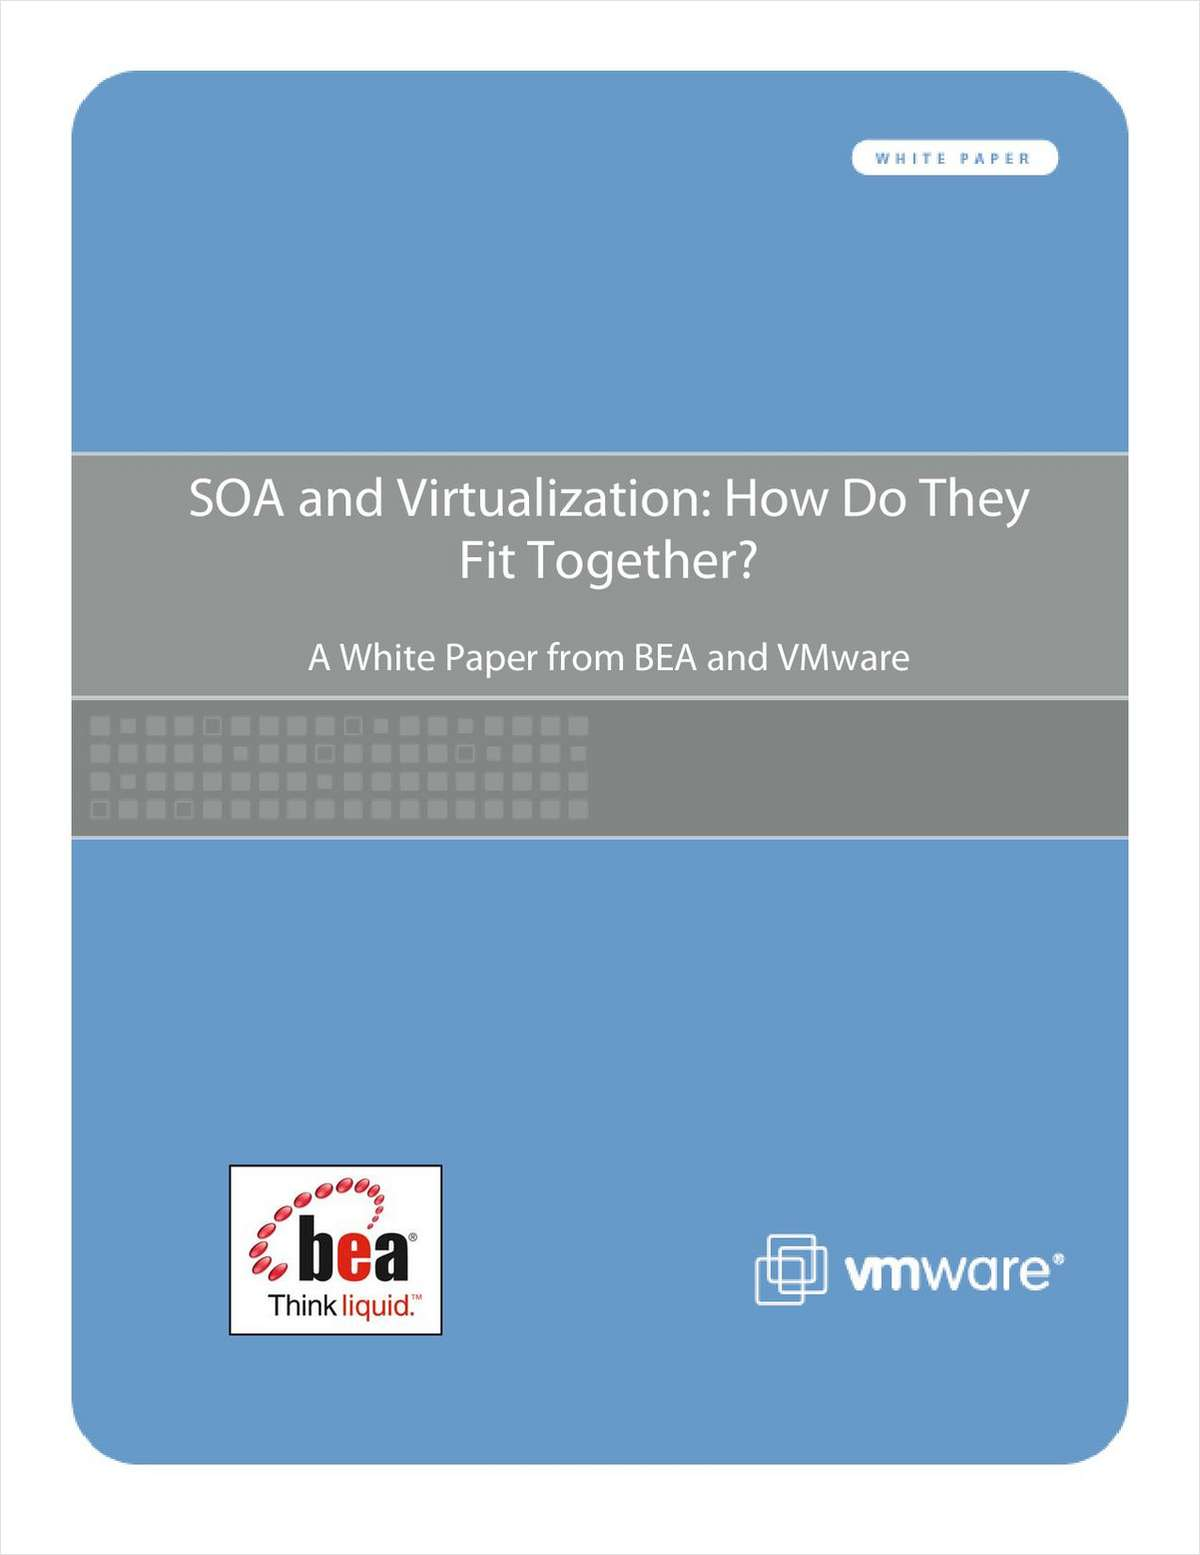 SOA and Virtualization: How Do They Fit Together?